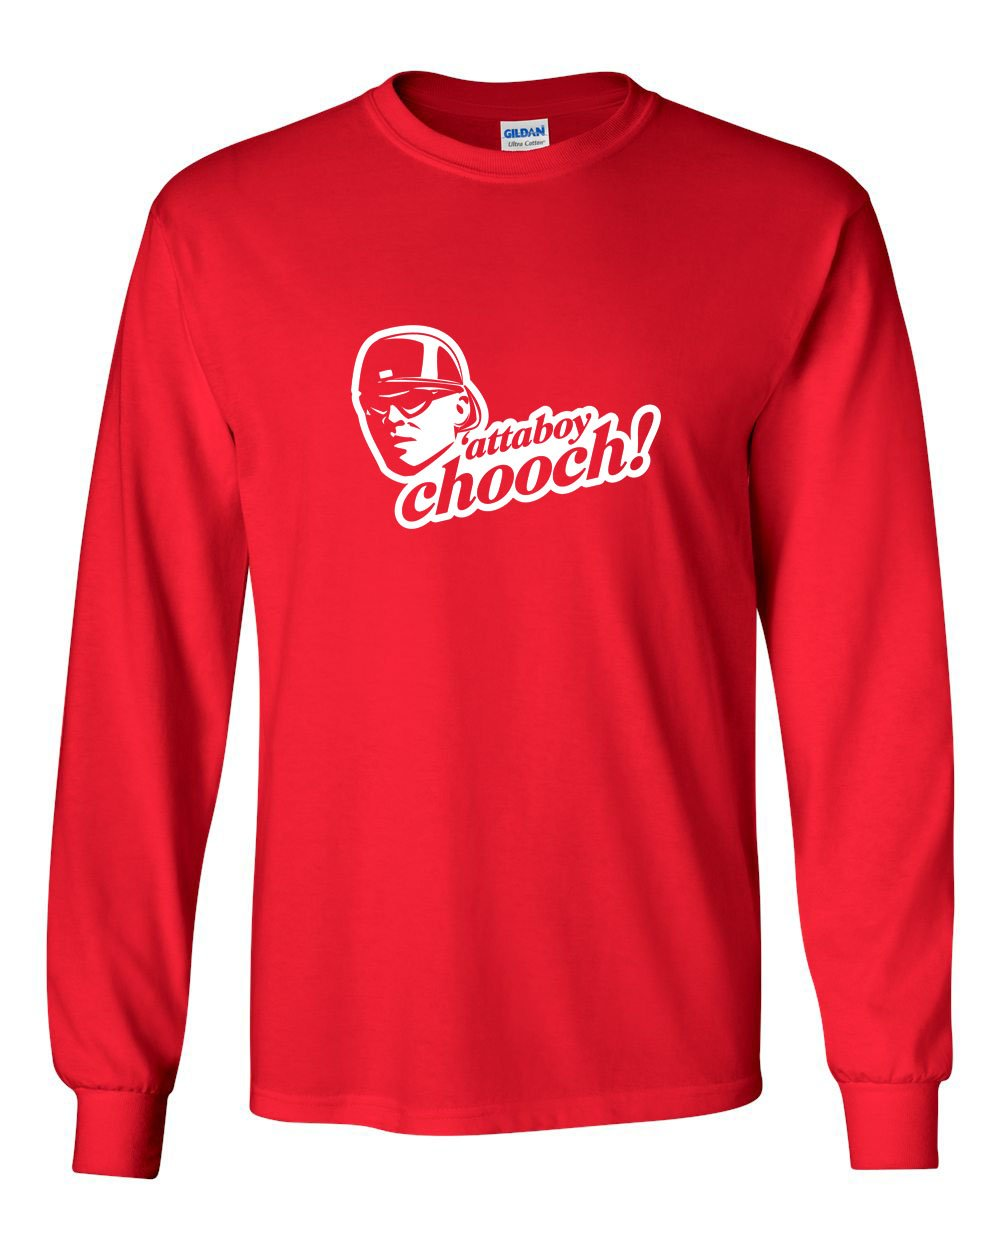 Attaboy Chooch MENS Long Sleeve Heavy Cotton T-Shirt